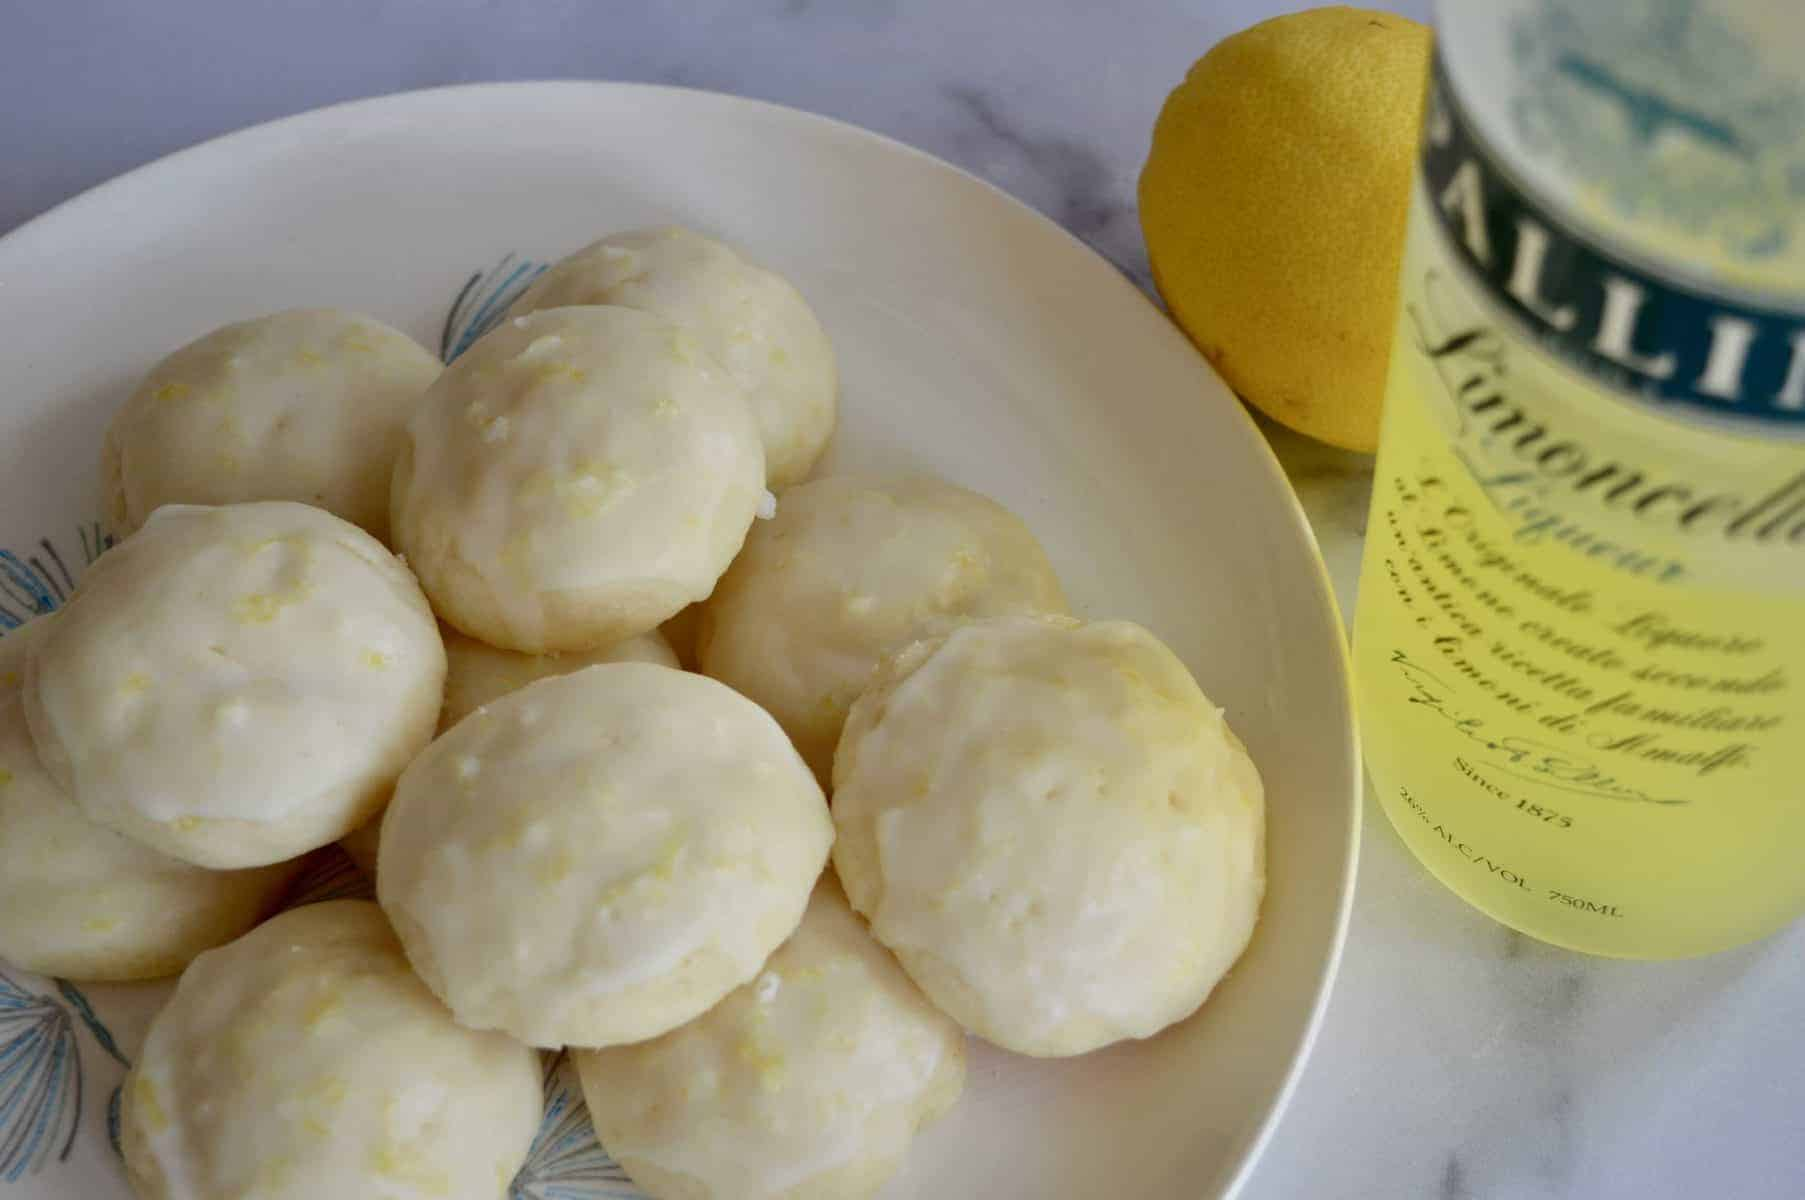 Limoncello Ricotta Cookies on a plate with Limoncello liqueur.